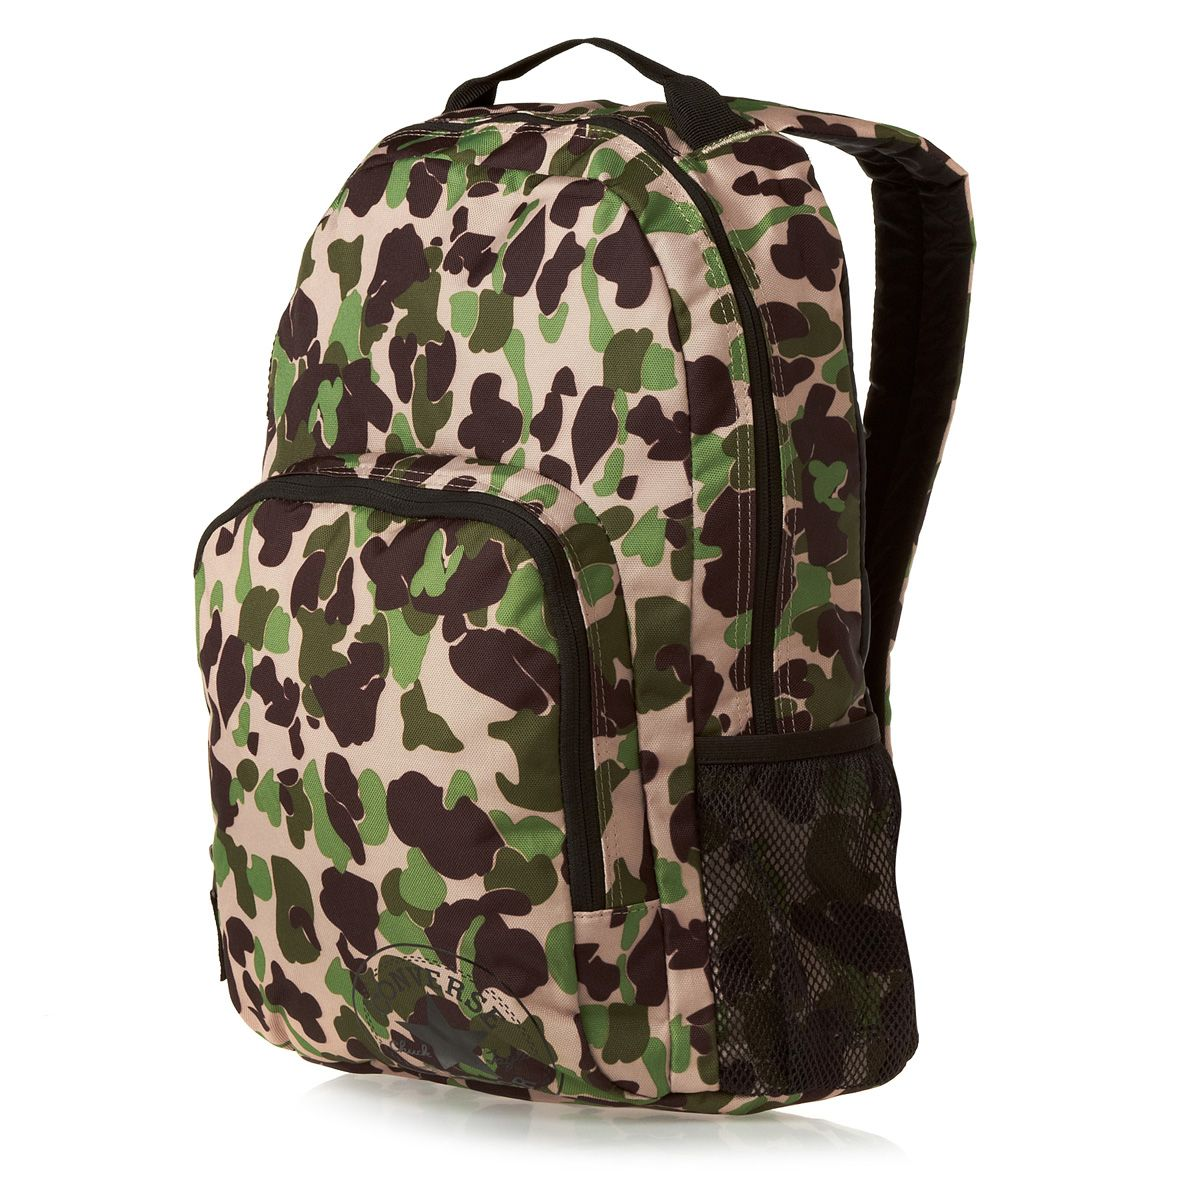 converse laptop backpack